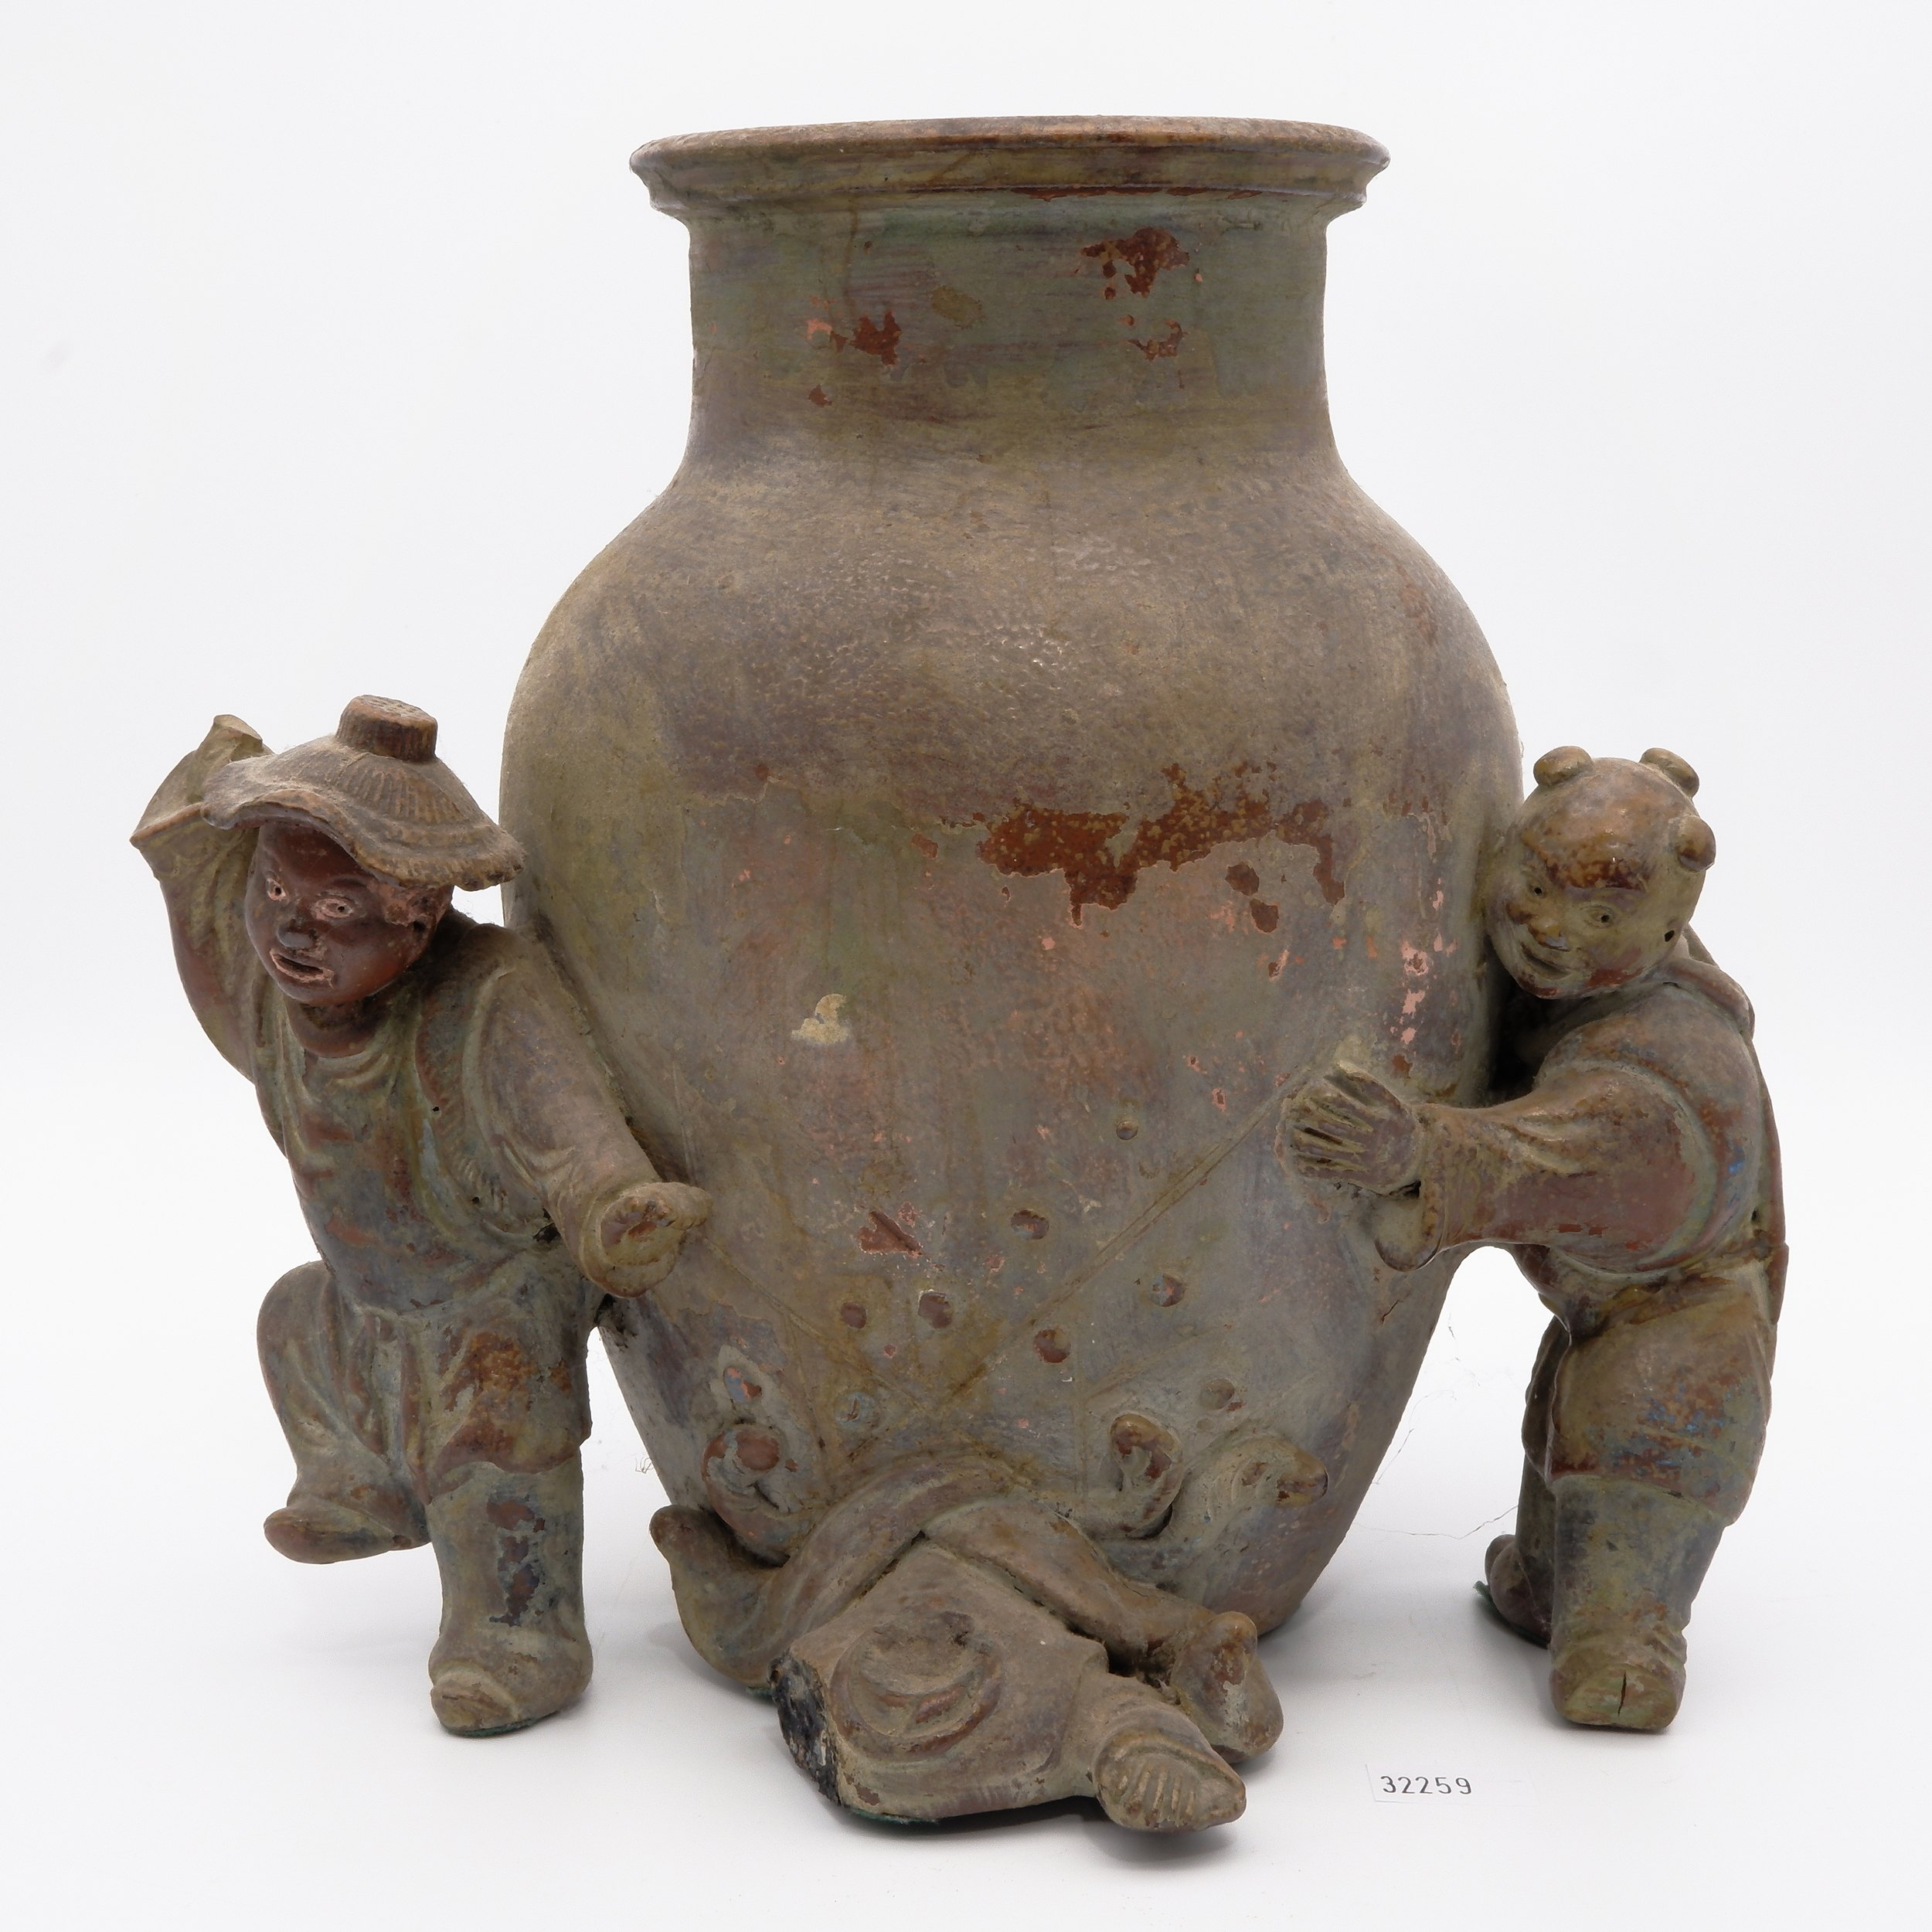 'Antique Chinese Stoneware Boys Vase, 19th Century or Earlier'